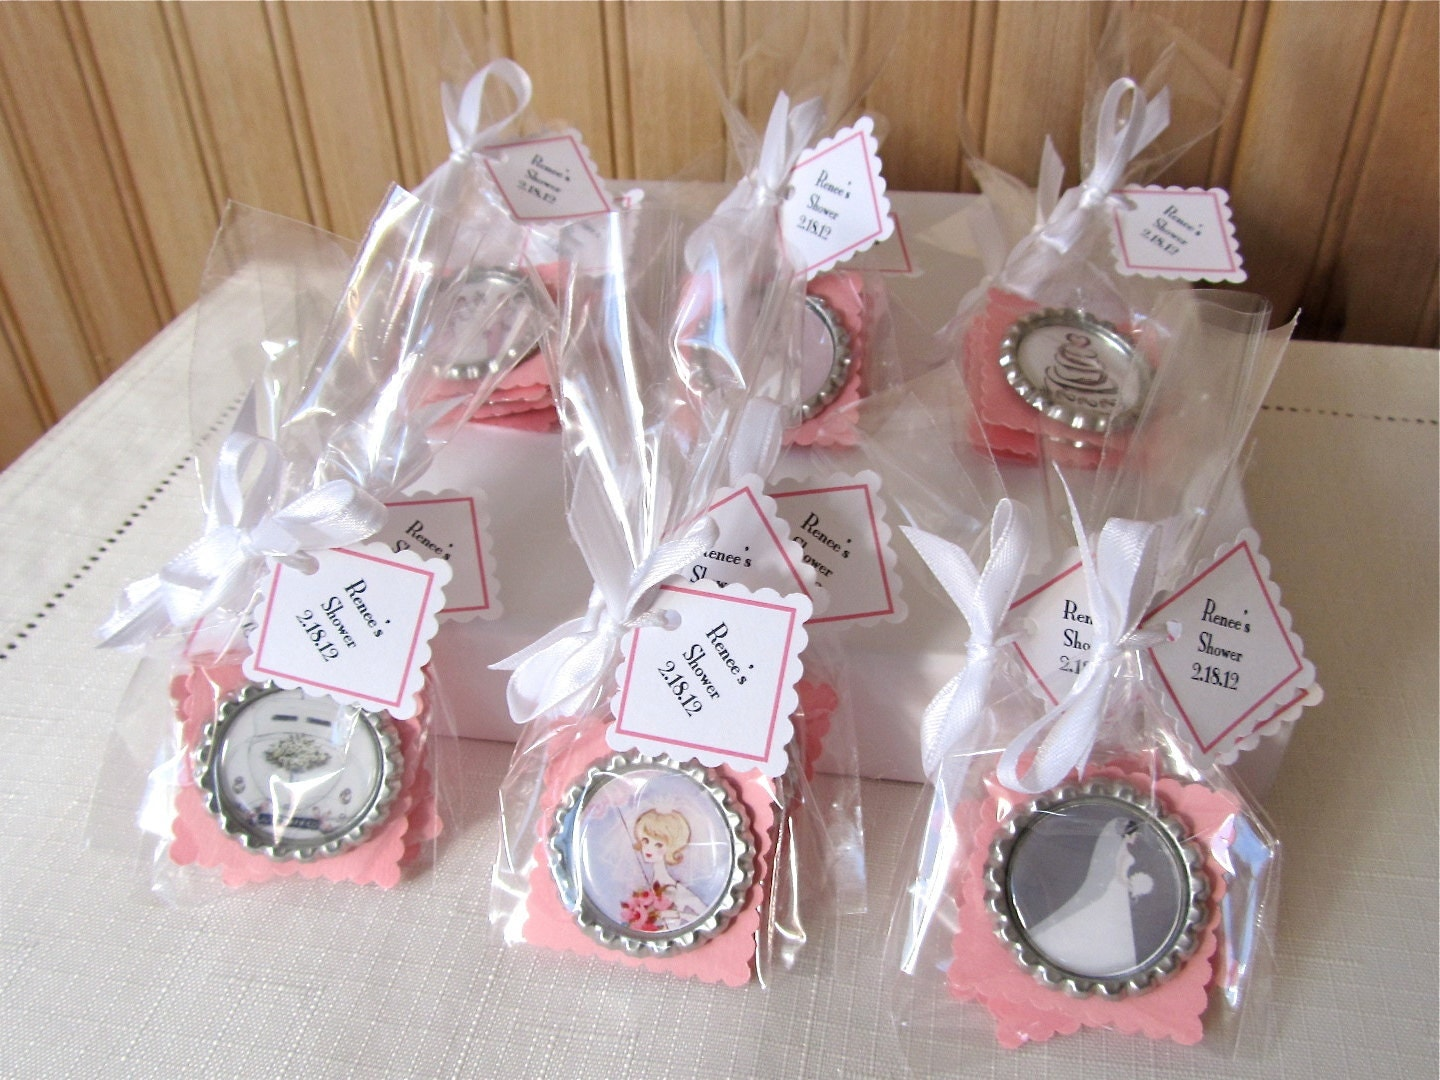 Diy Bridal Shower Gift Ideas For Guests : Bridal Shower Favor Magnets